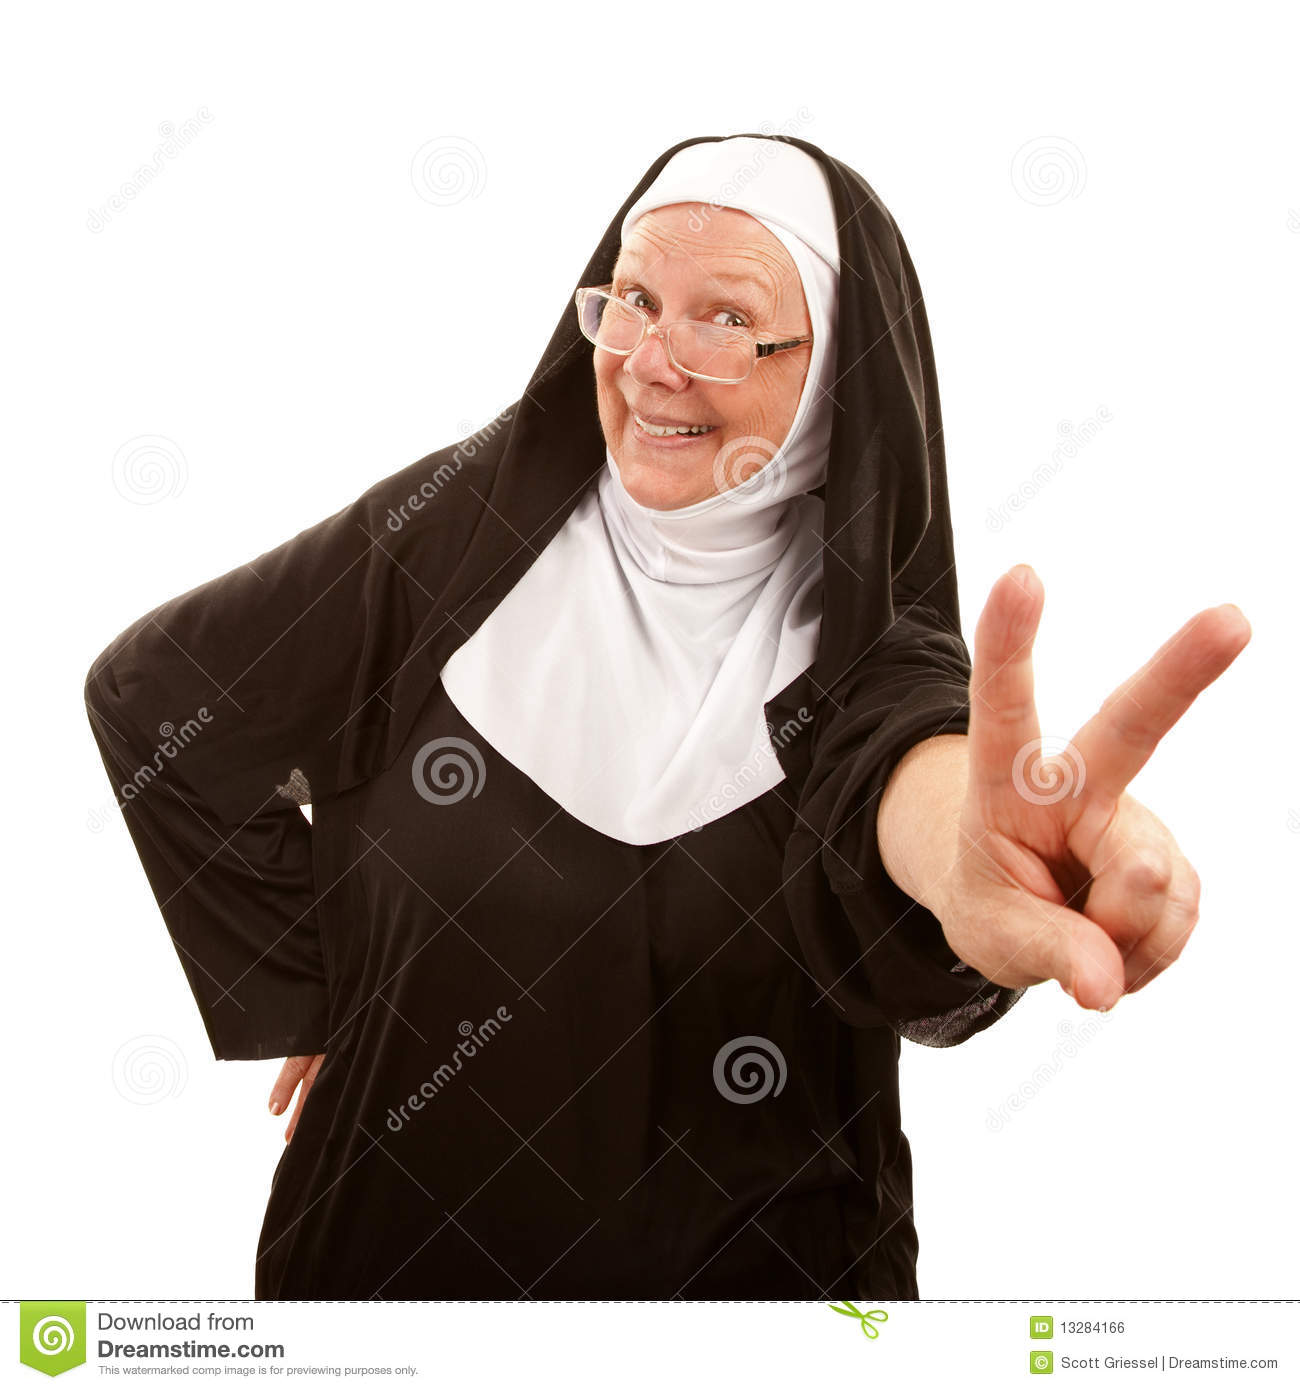 Funny Nun Making Peace Sign Royalty Free Stock Image   Image  13284166